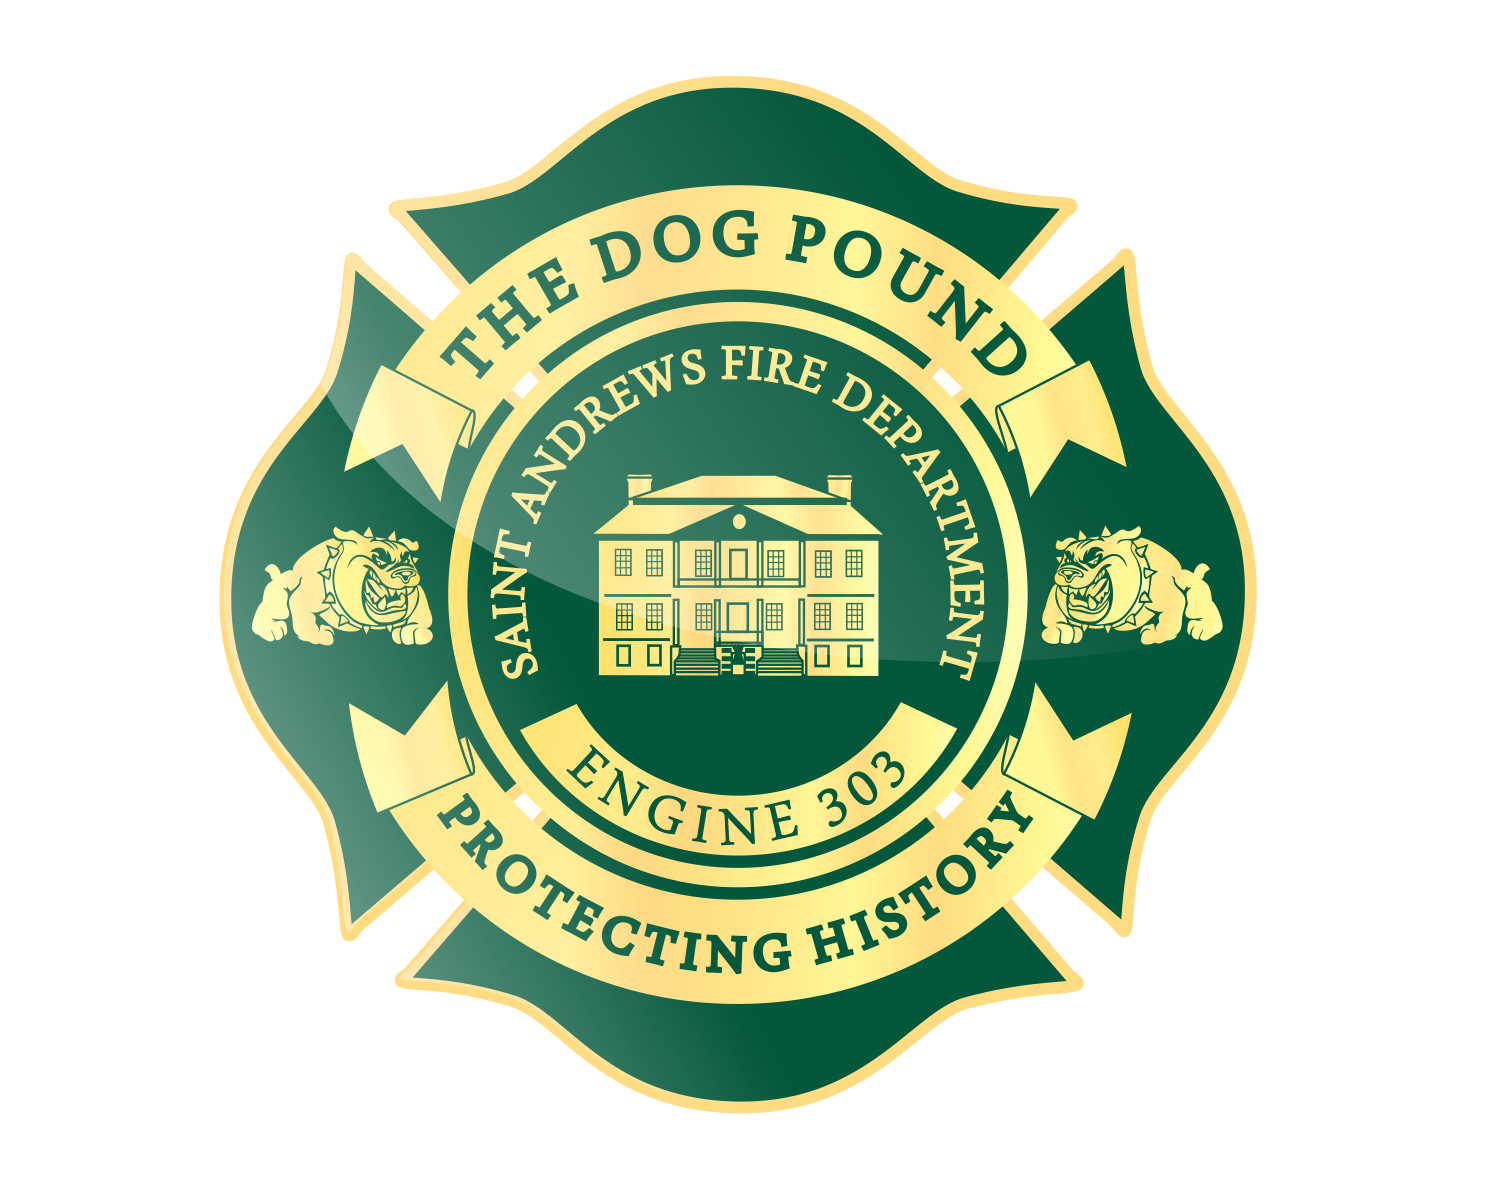 Create the next logo for Saint Andrews Fire Department or SAFD, Engine 303, The Dog Pound Protecting History